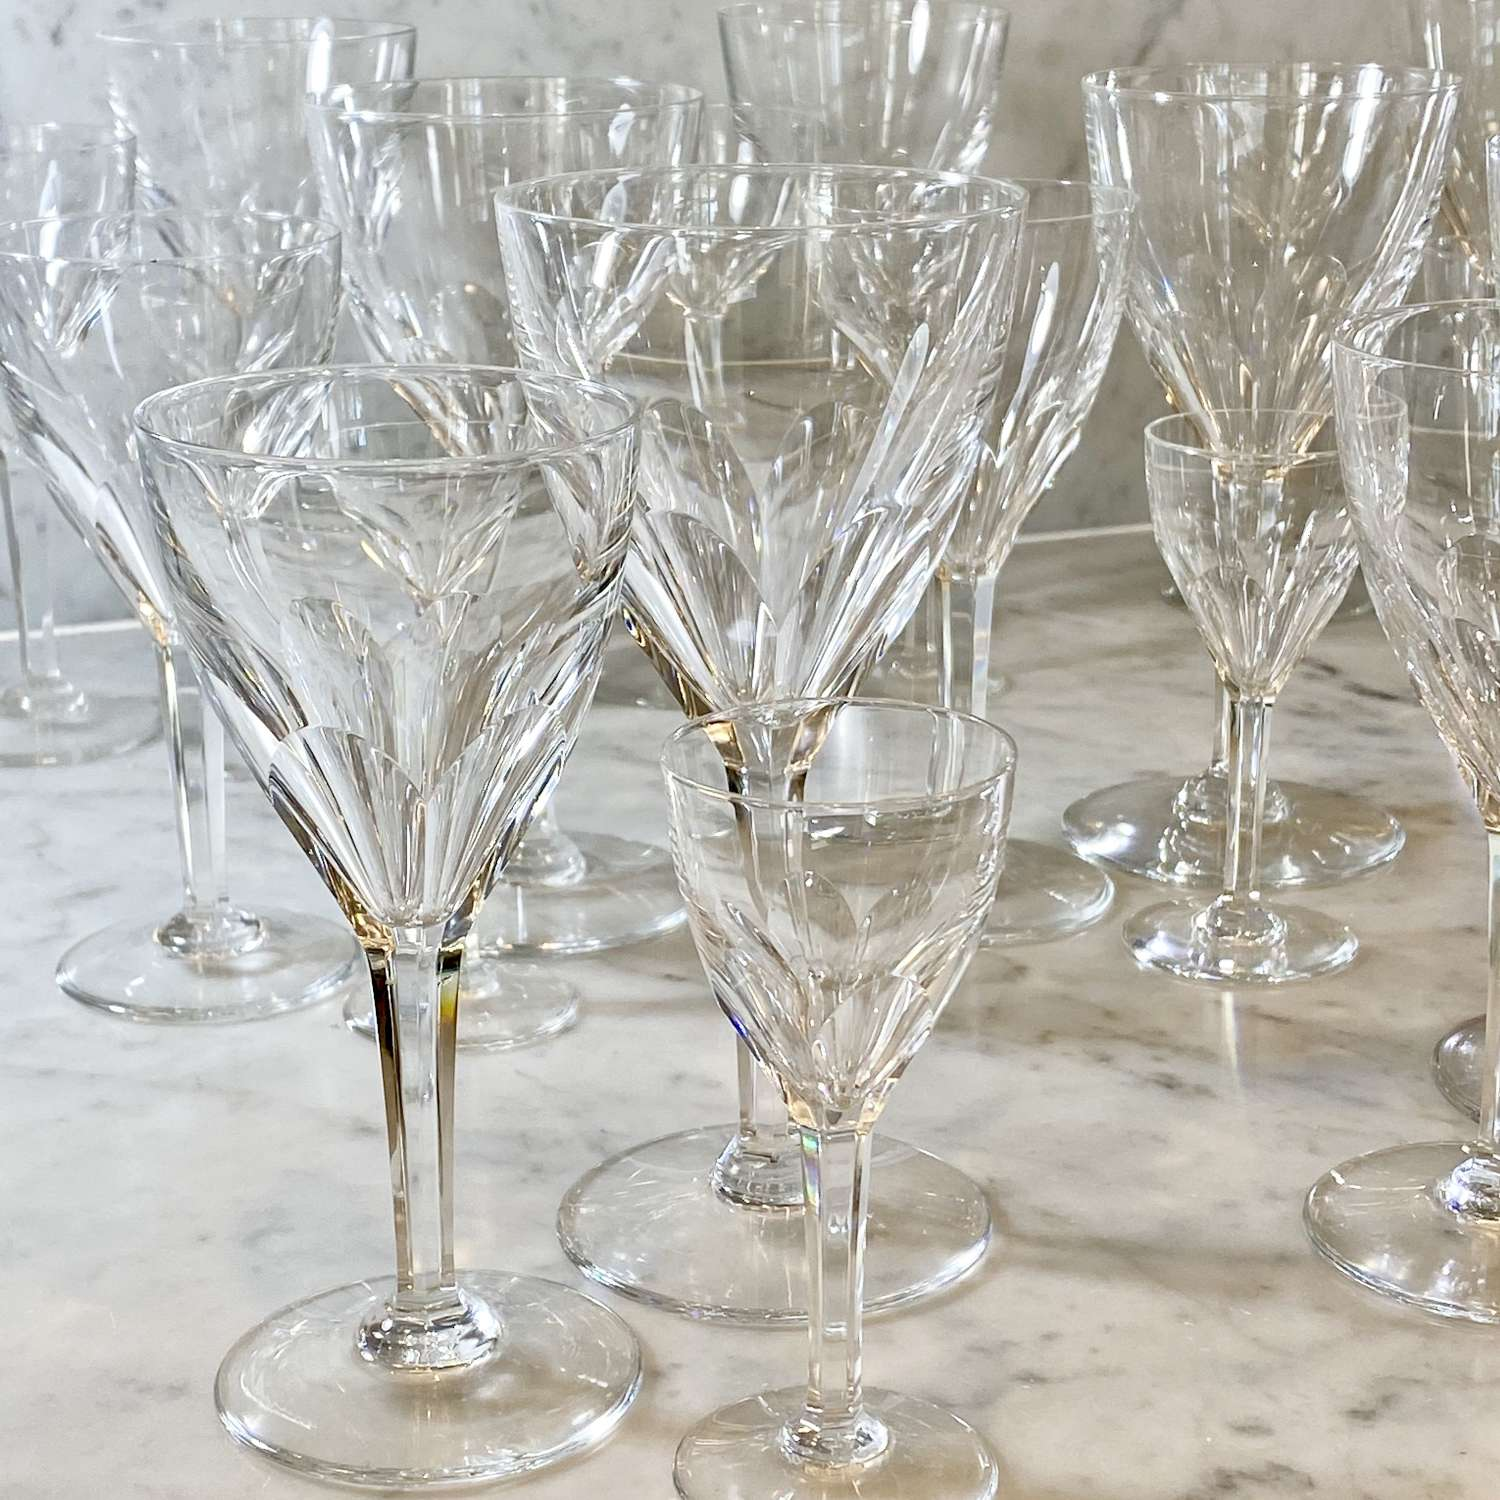 Suite of 36 Val Saint Lambert finest crystal wine glasses